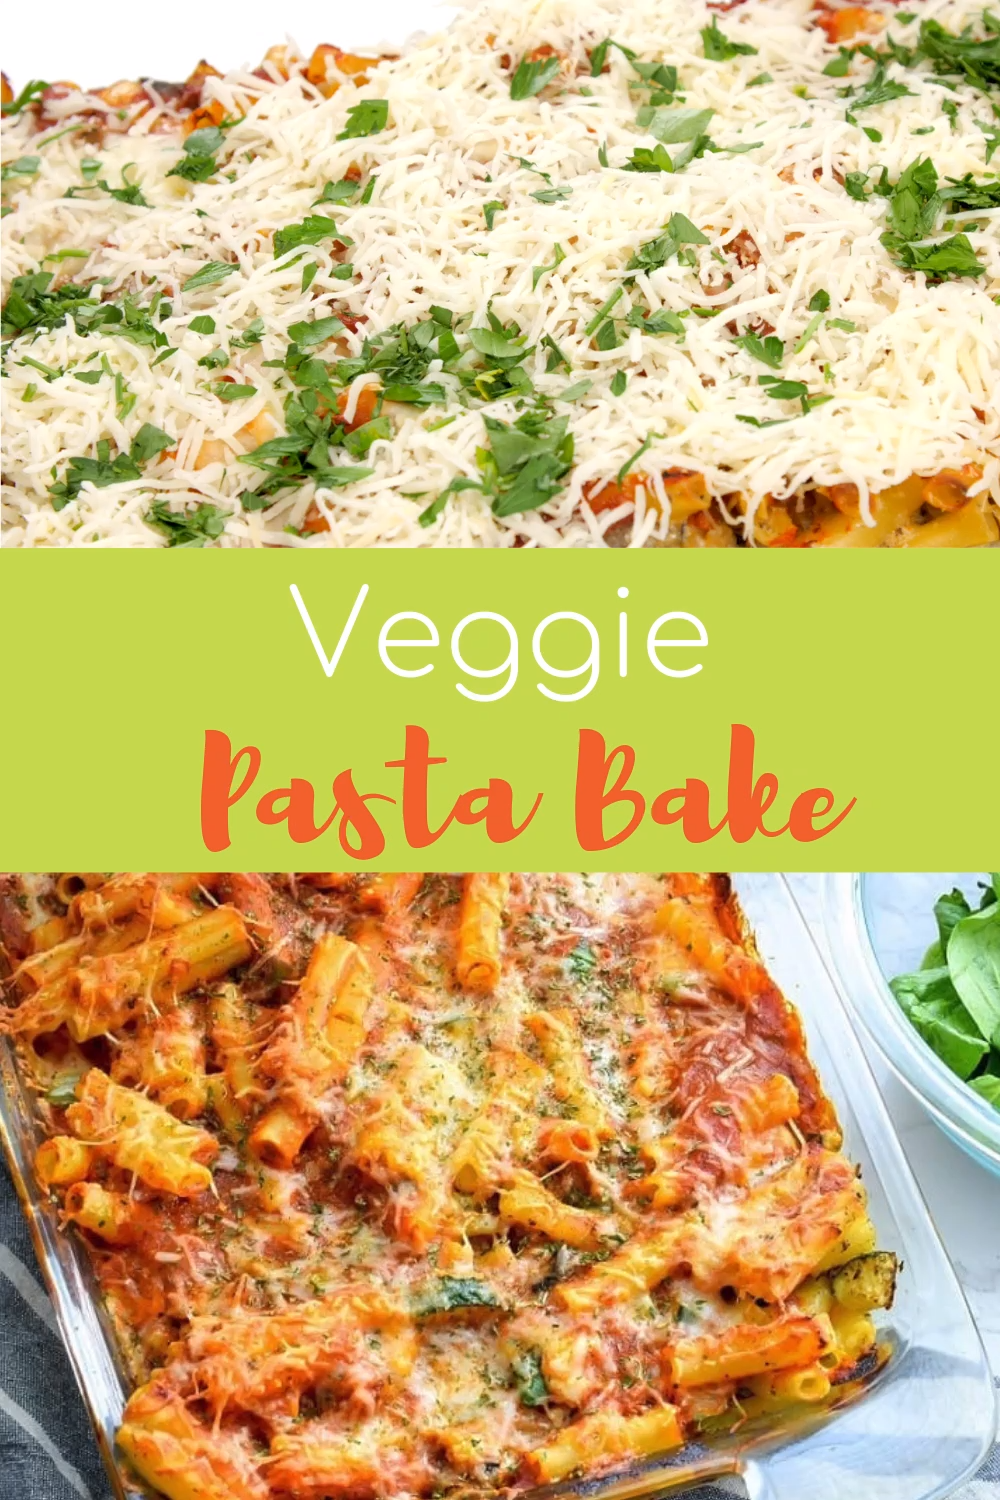 Easy Veggie Pasta Bake (Great for Meal Prep) -   19 meal prep recipes vegetarian freezer ideas